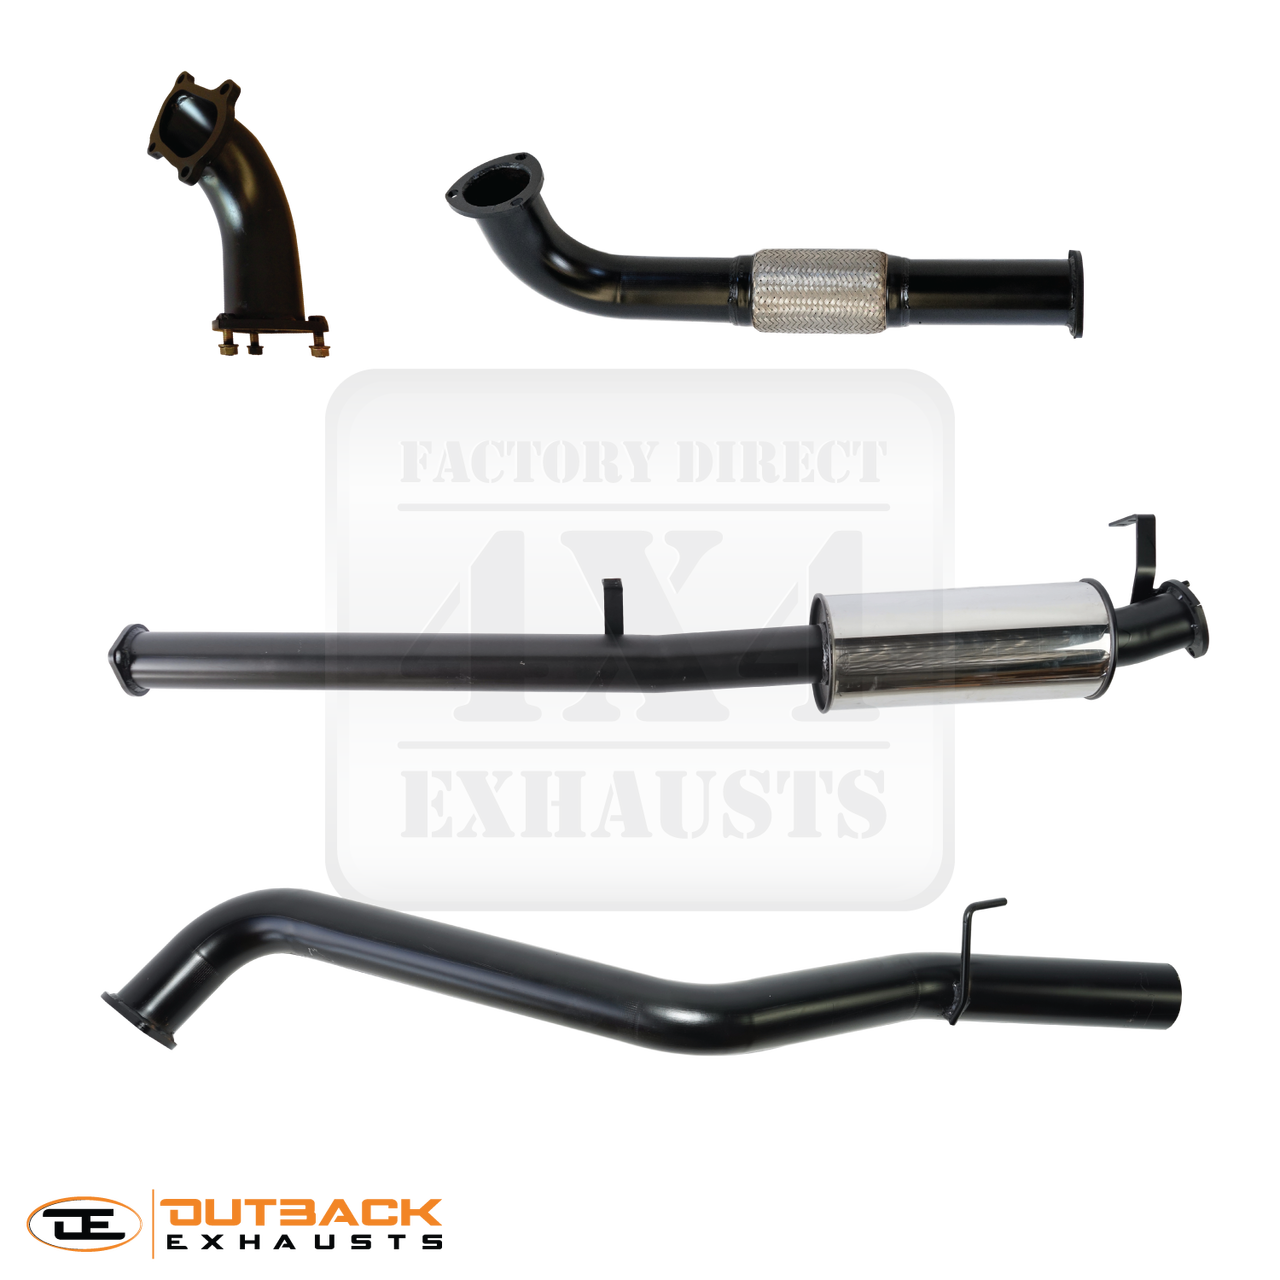 60 Series 3 409 Stainless Exhaust System